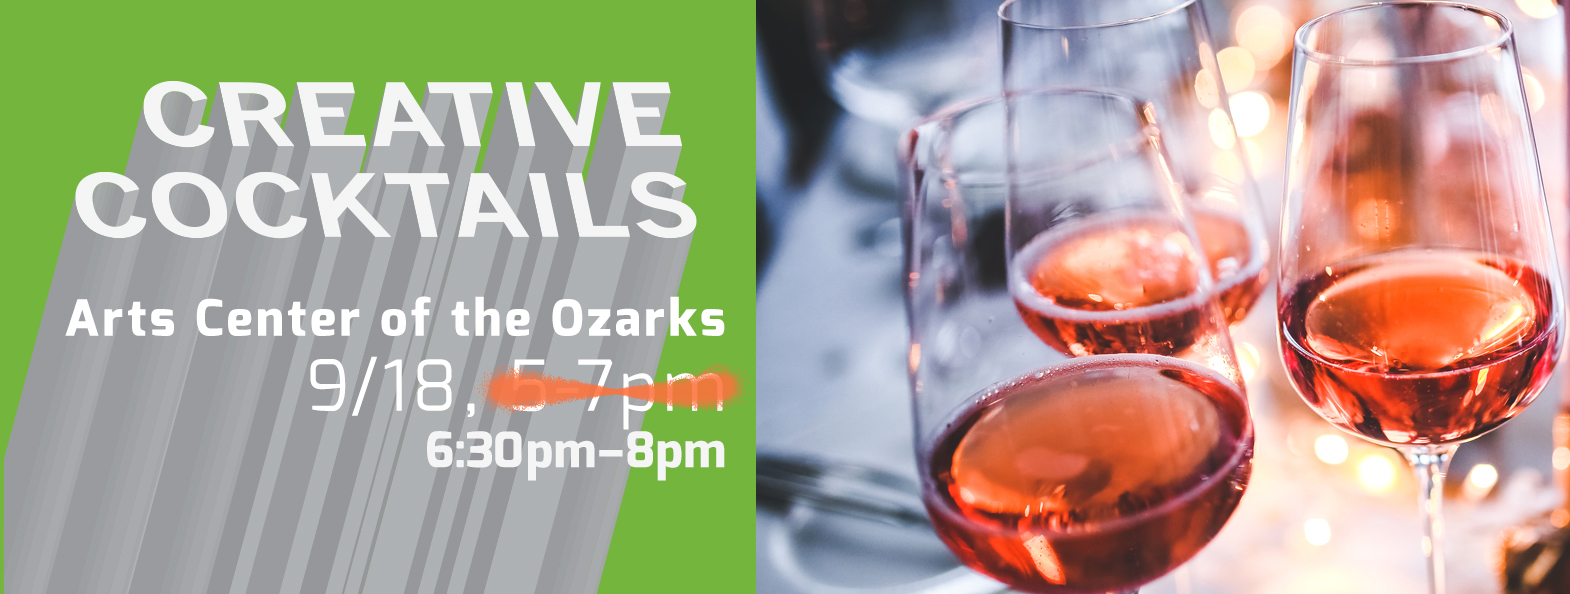 Creative Cocktails September 18 at the Arts Center of the Ozarks